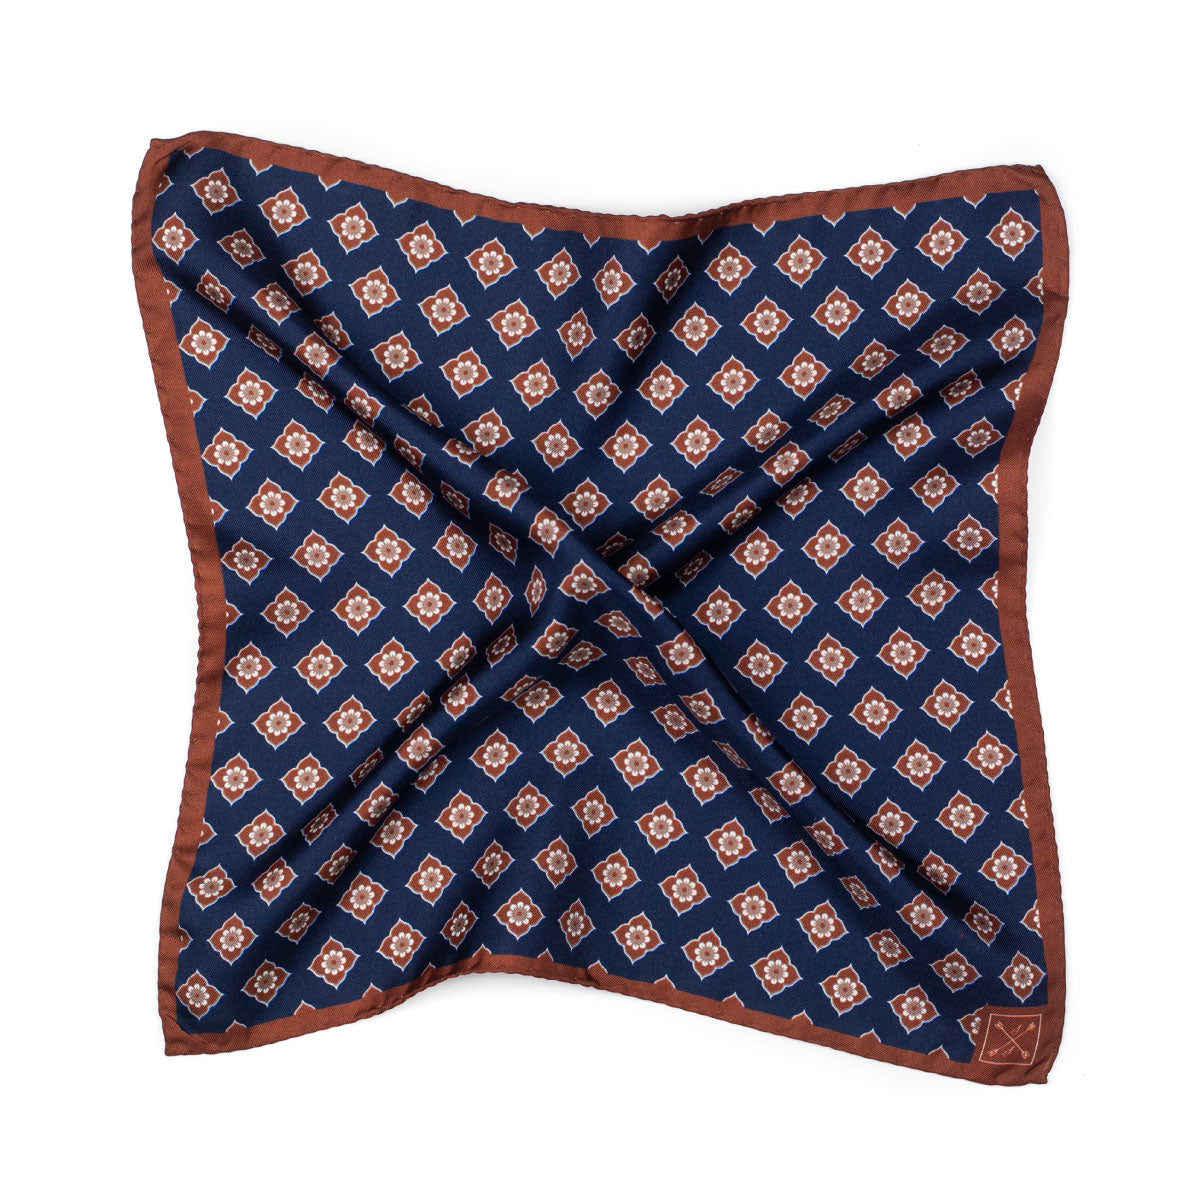 Navy Blue and Brown Floral Silk Pocket Square